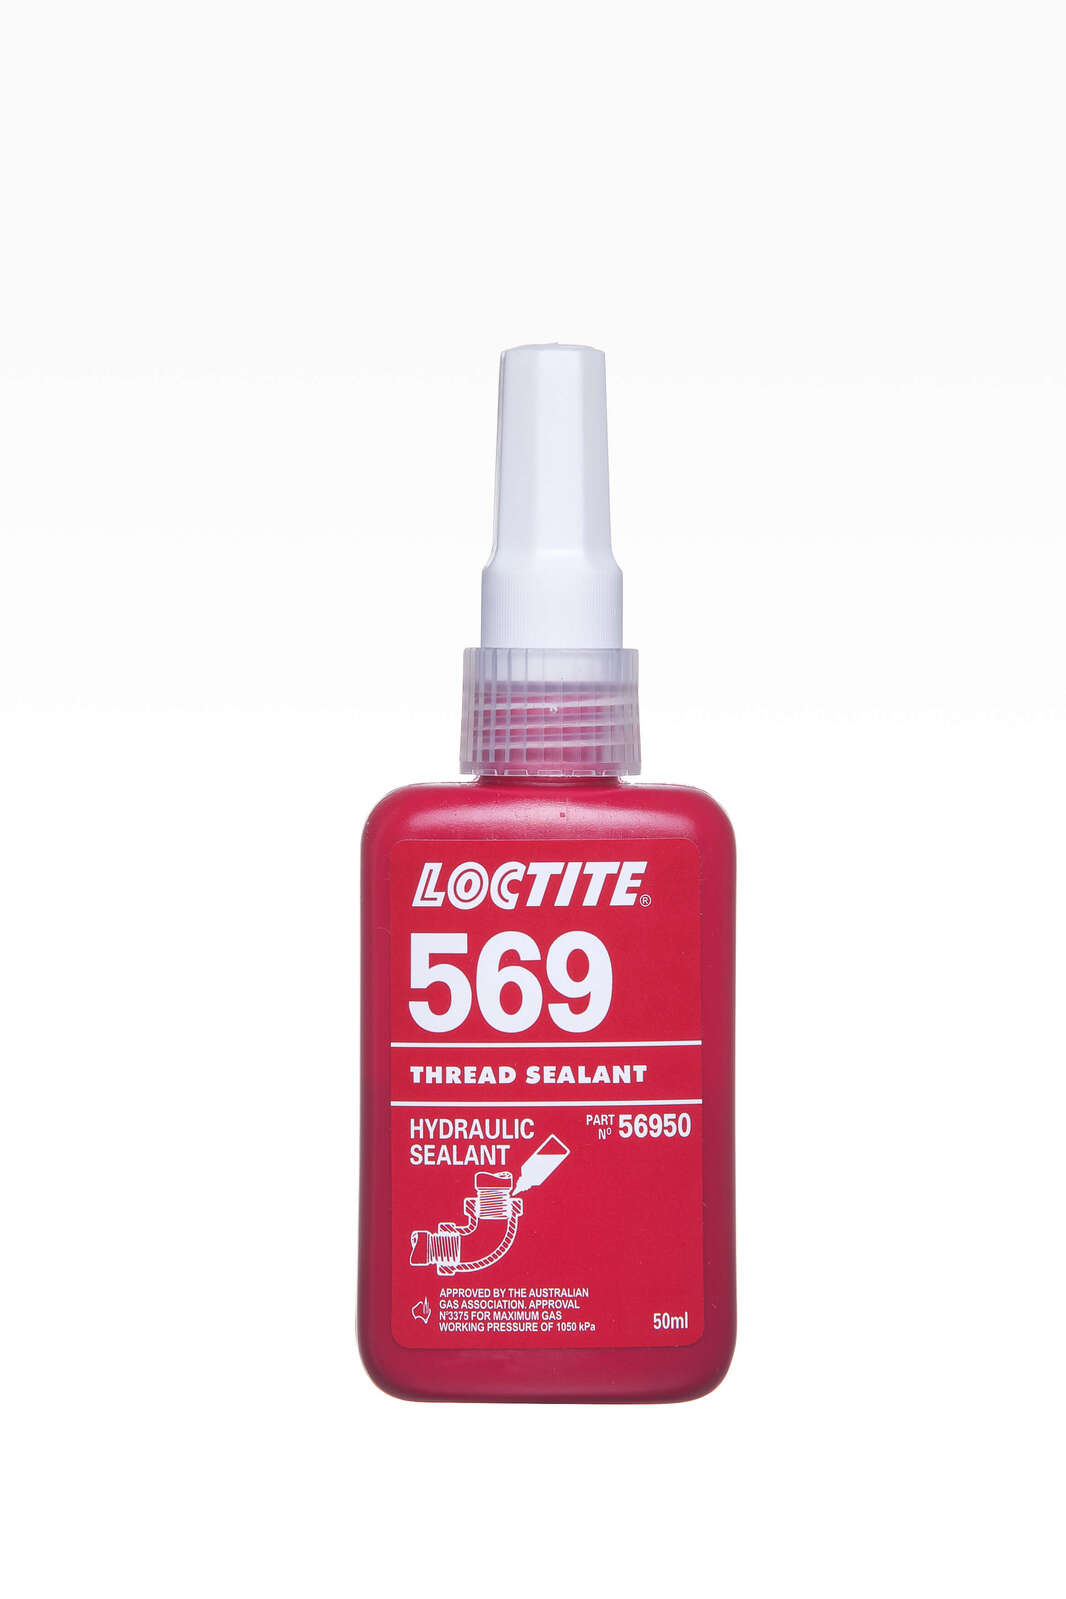 Loctite 569 Hydraulic High Strength Thread Sealant 50ml